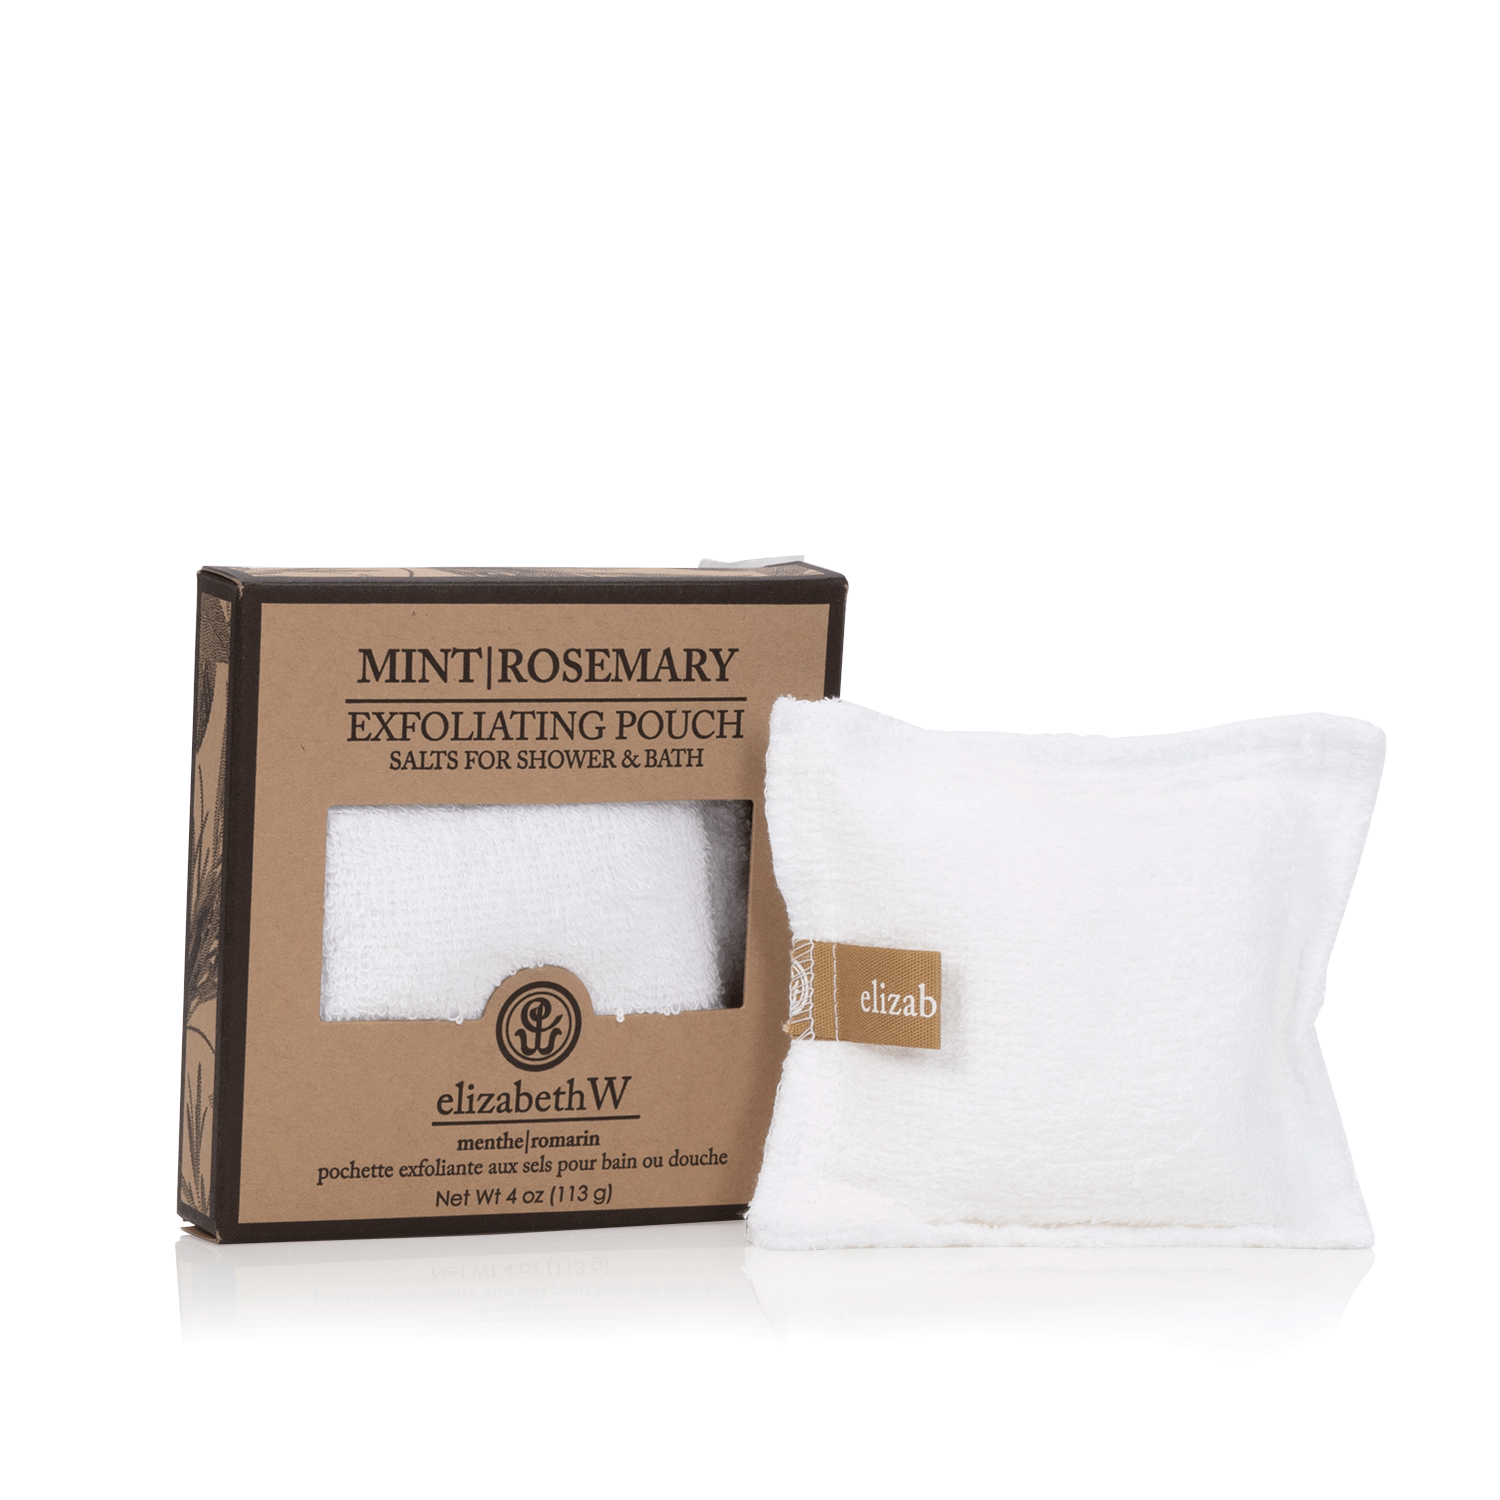 Mint Rosemary Exfoliating Pouch